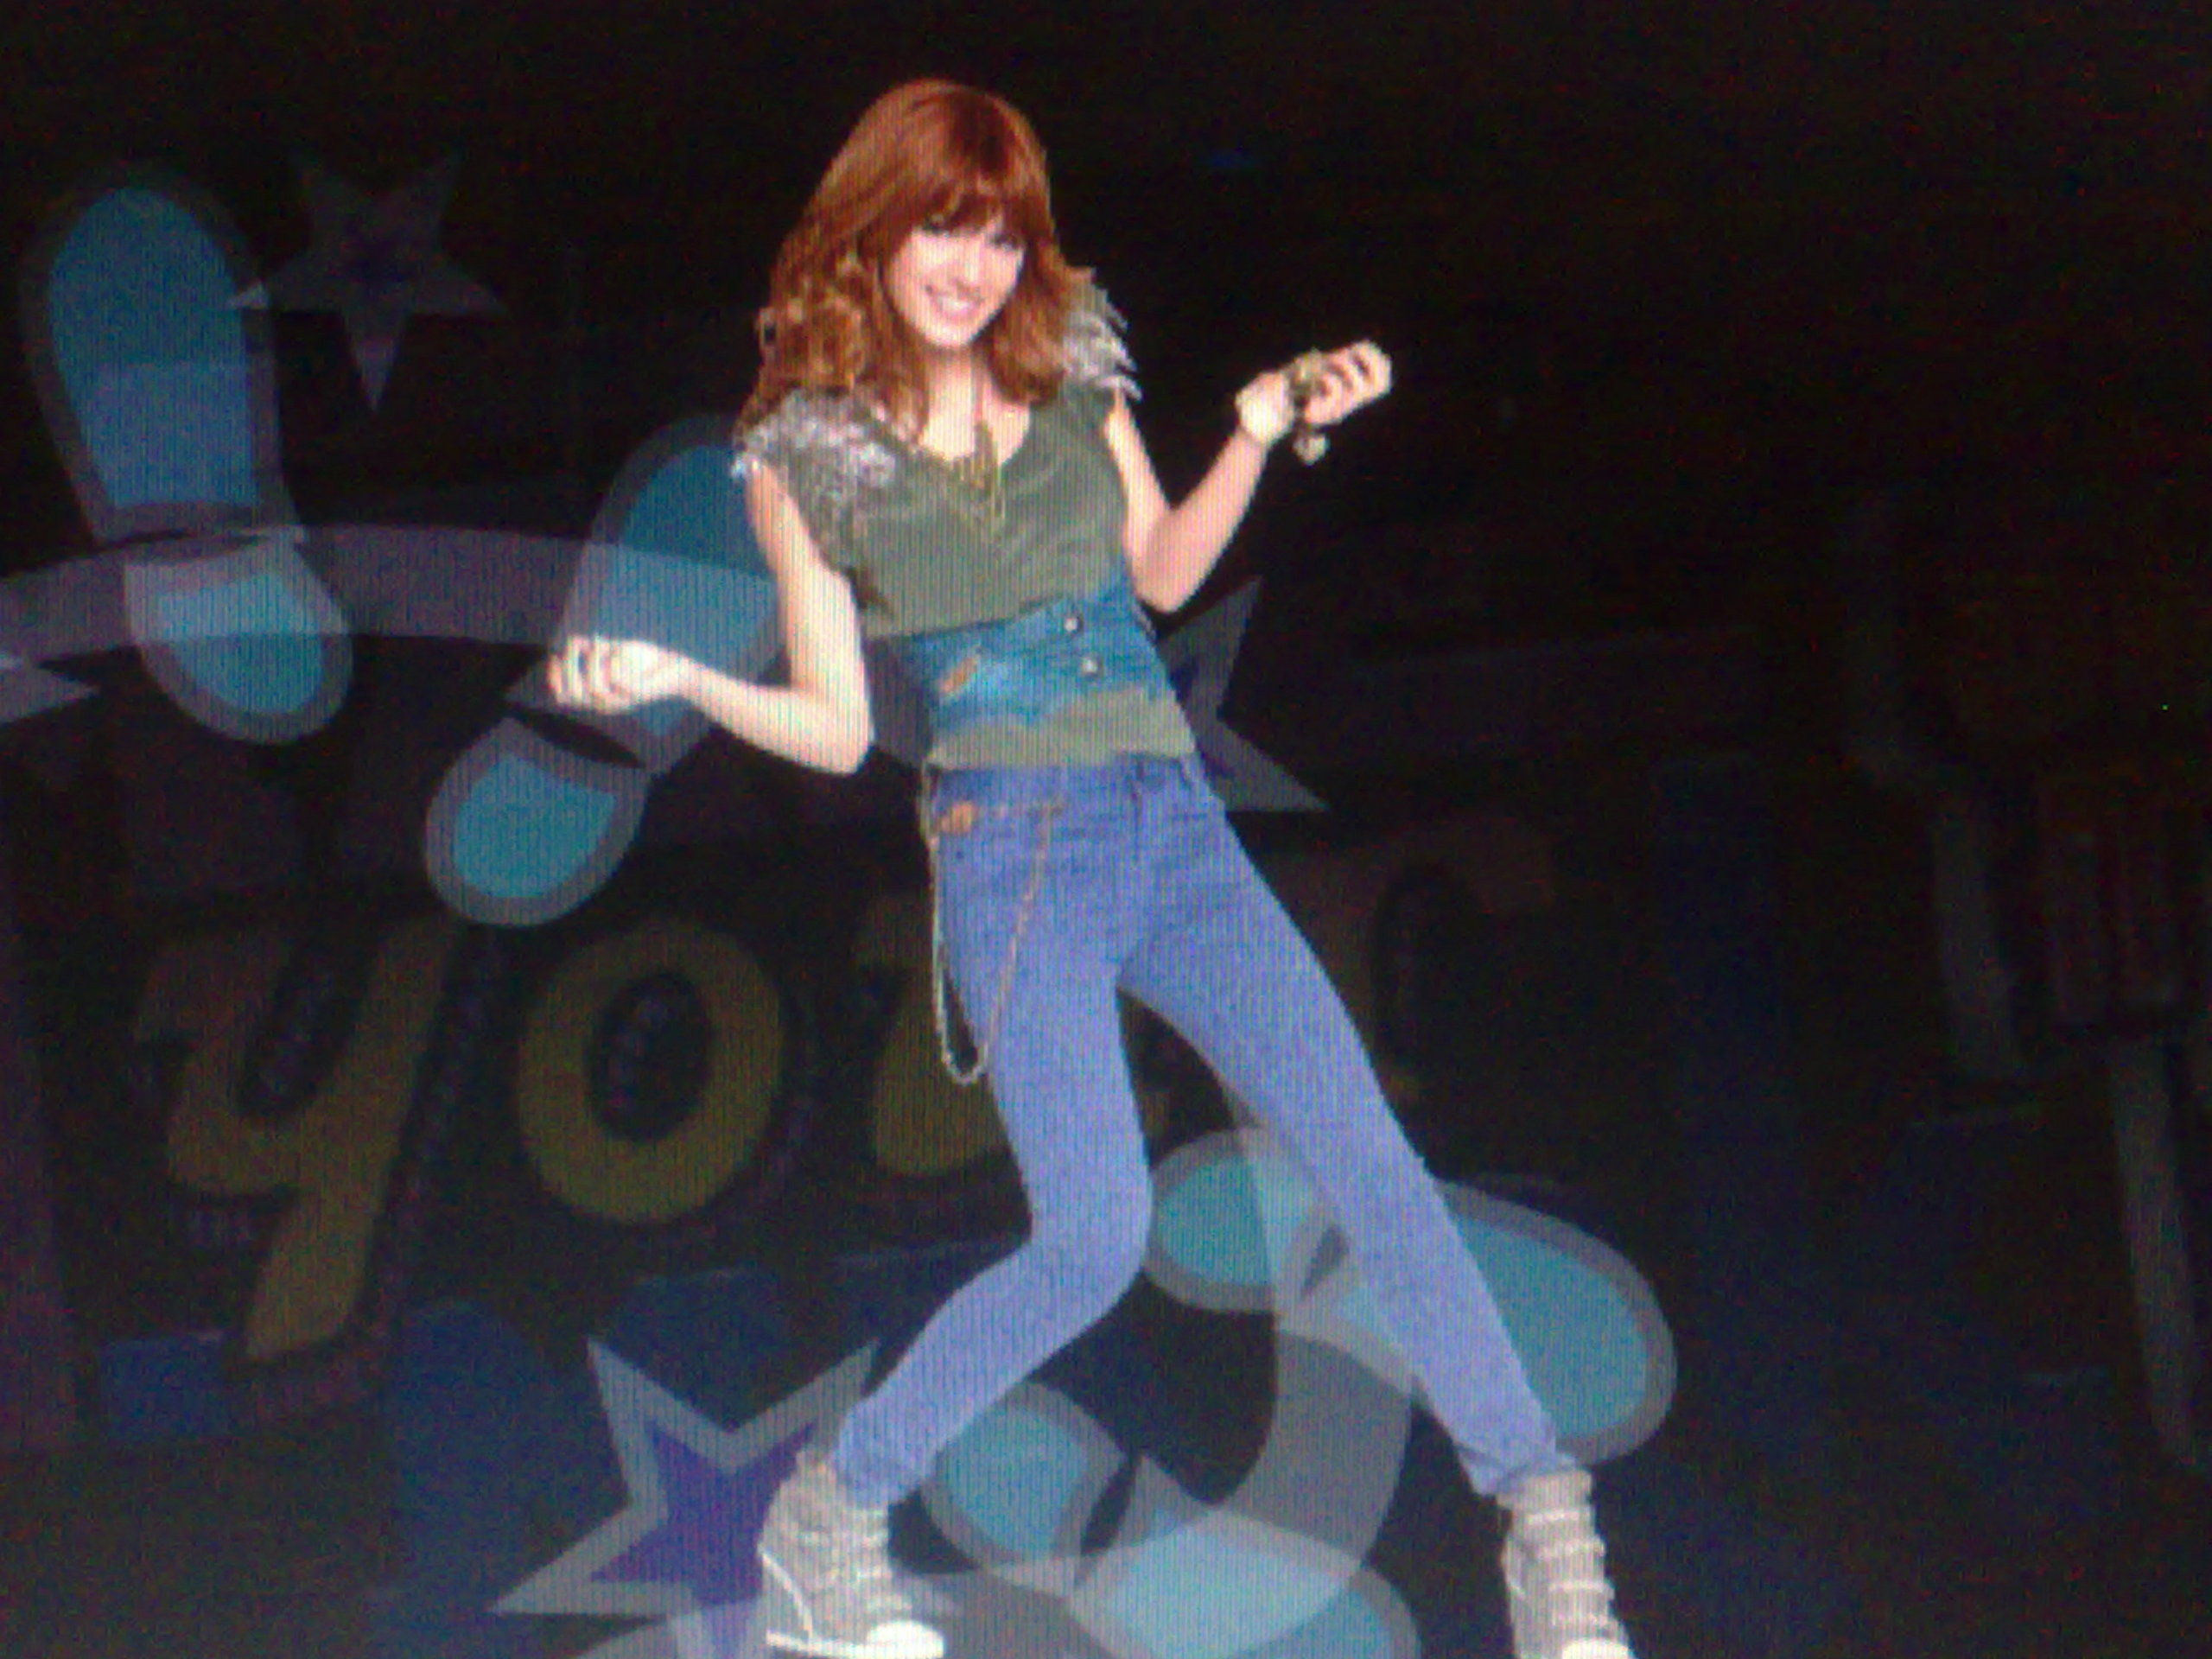 Something cece jones shake it up really. join